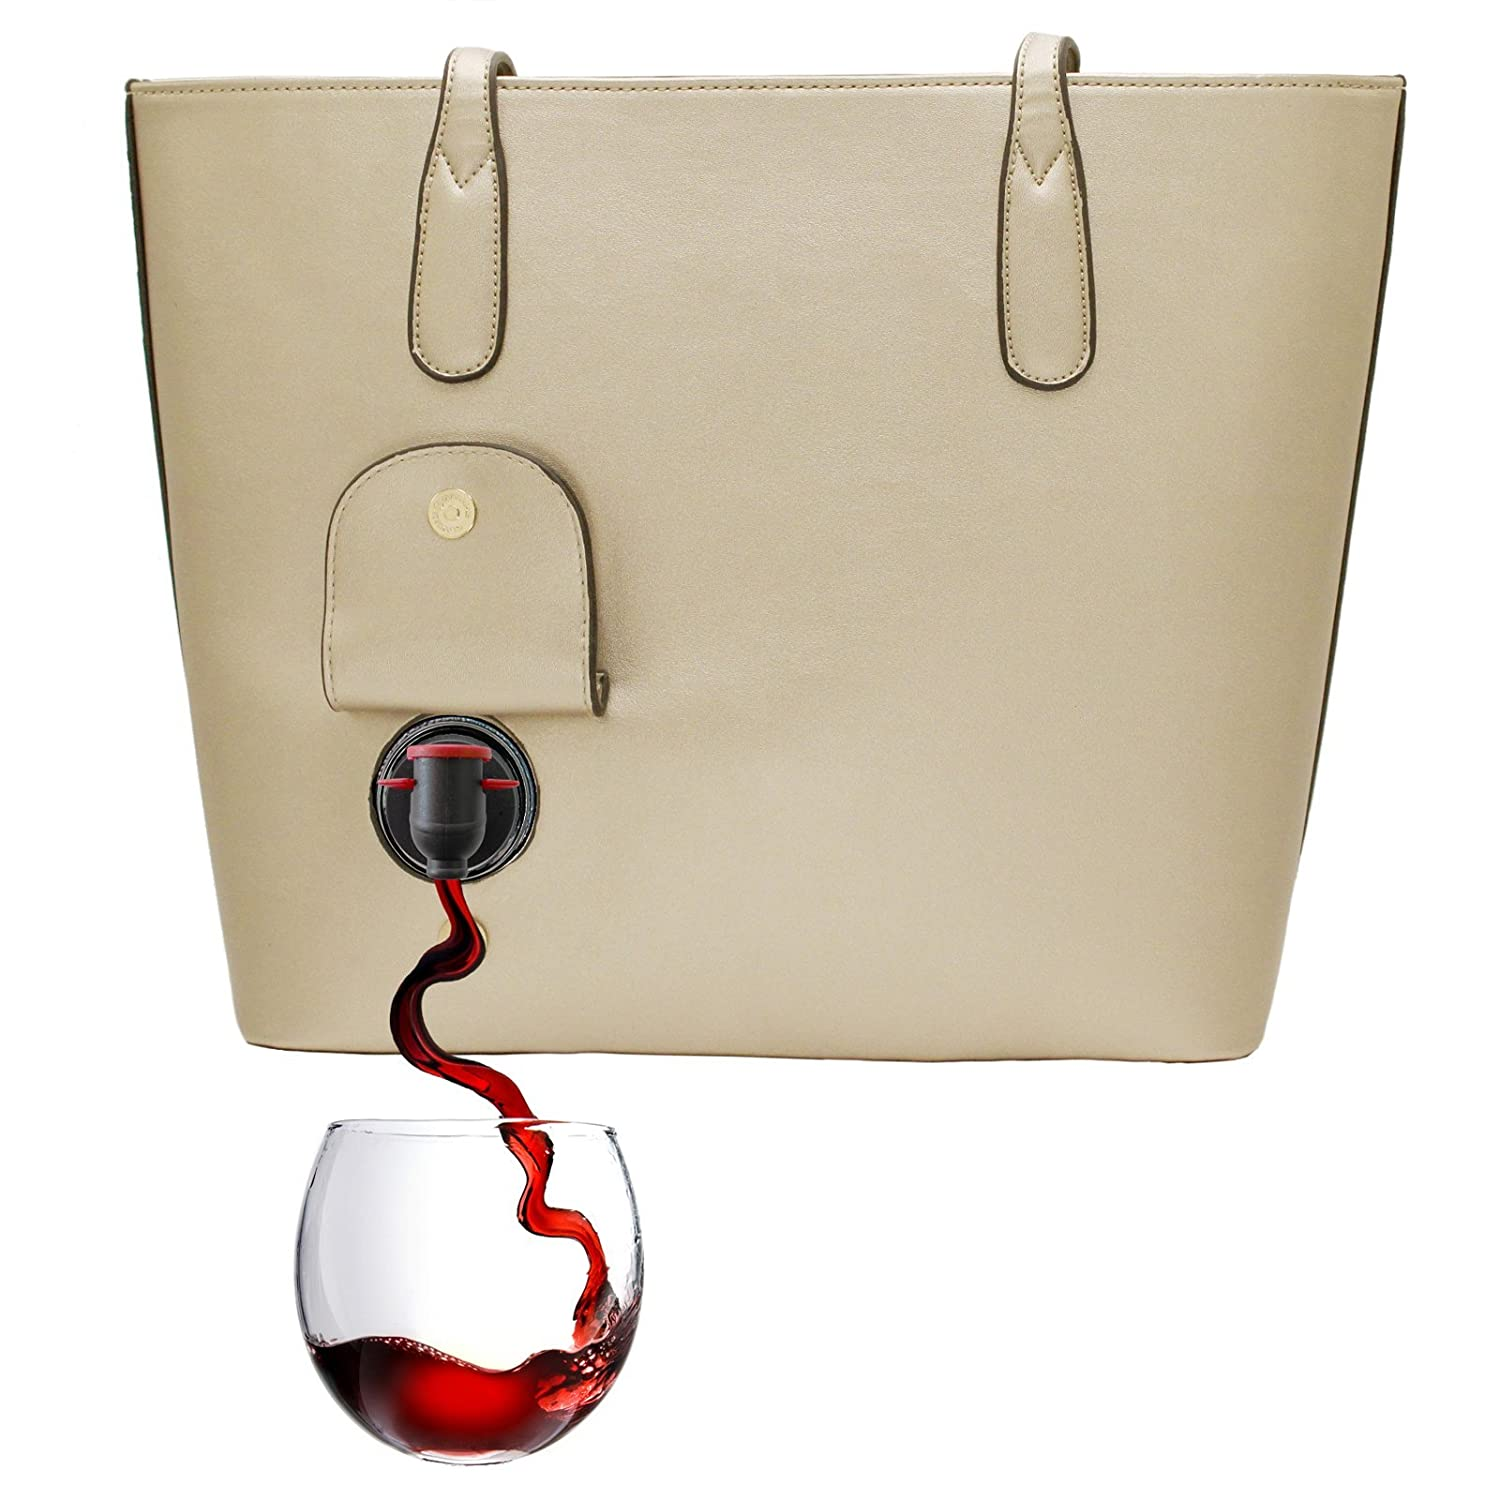 PortoVino Wine Purse (Gold) - Fashionable purse with Hidden, Insulated Compartment, Holds 2 bottles of Wine!